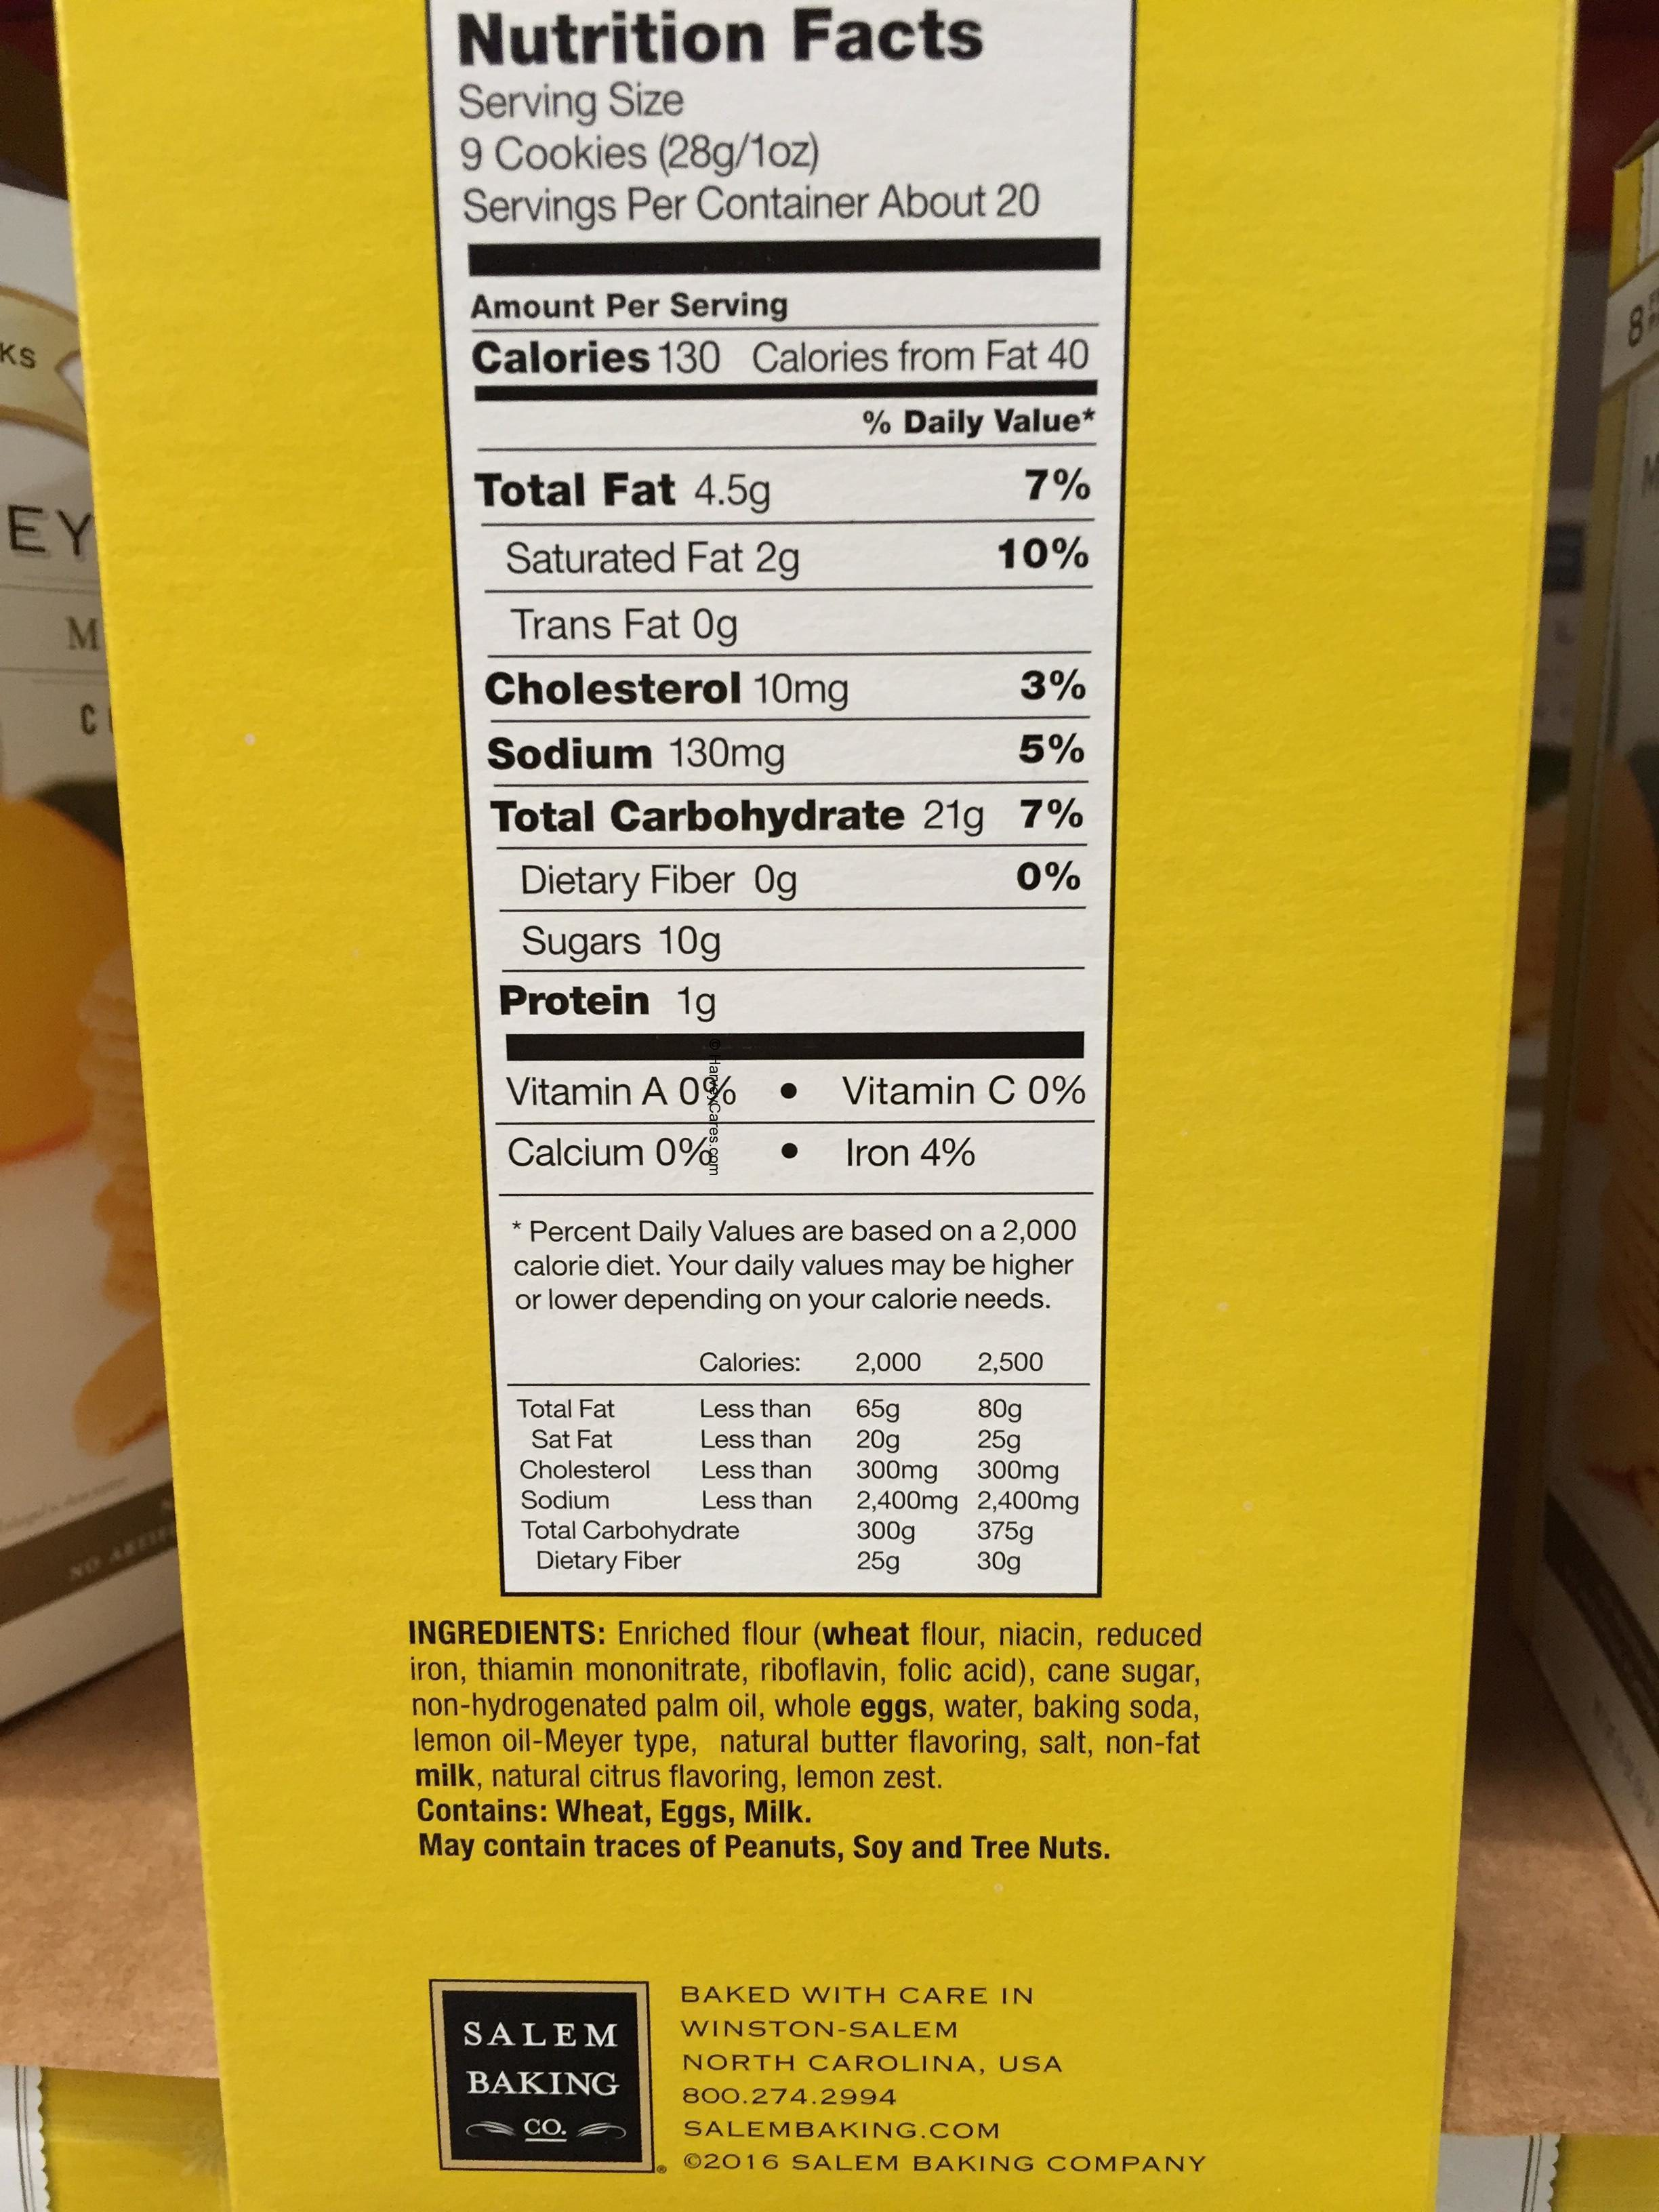 Salem Baking Meyer Lemon Cookie Nutrition Facts Ingredients List